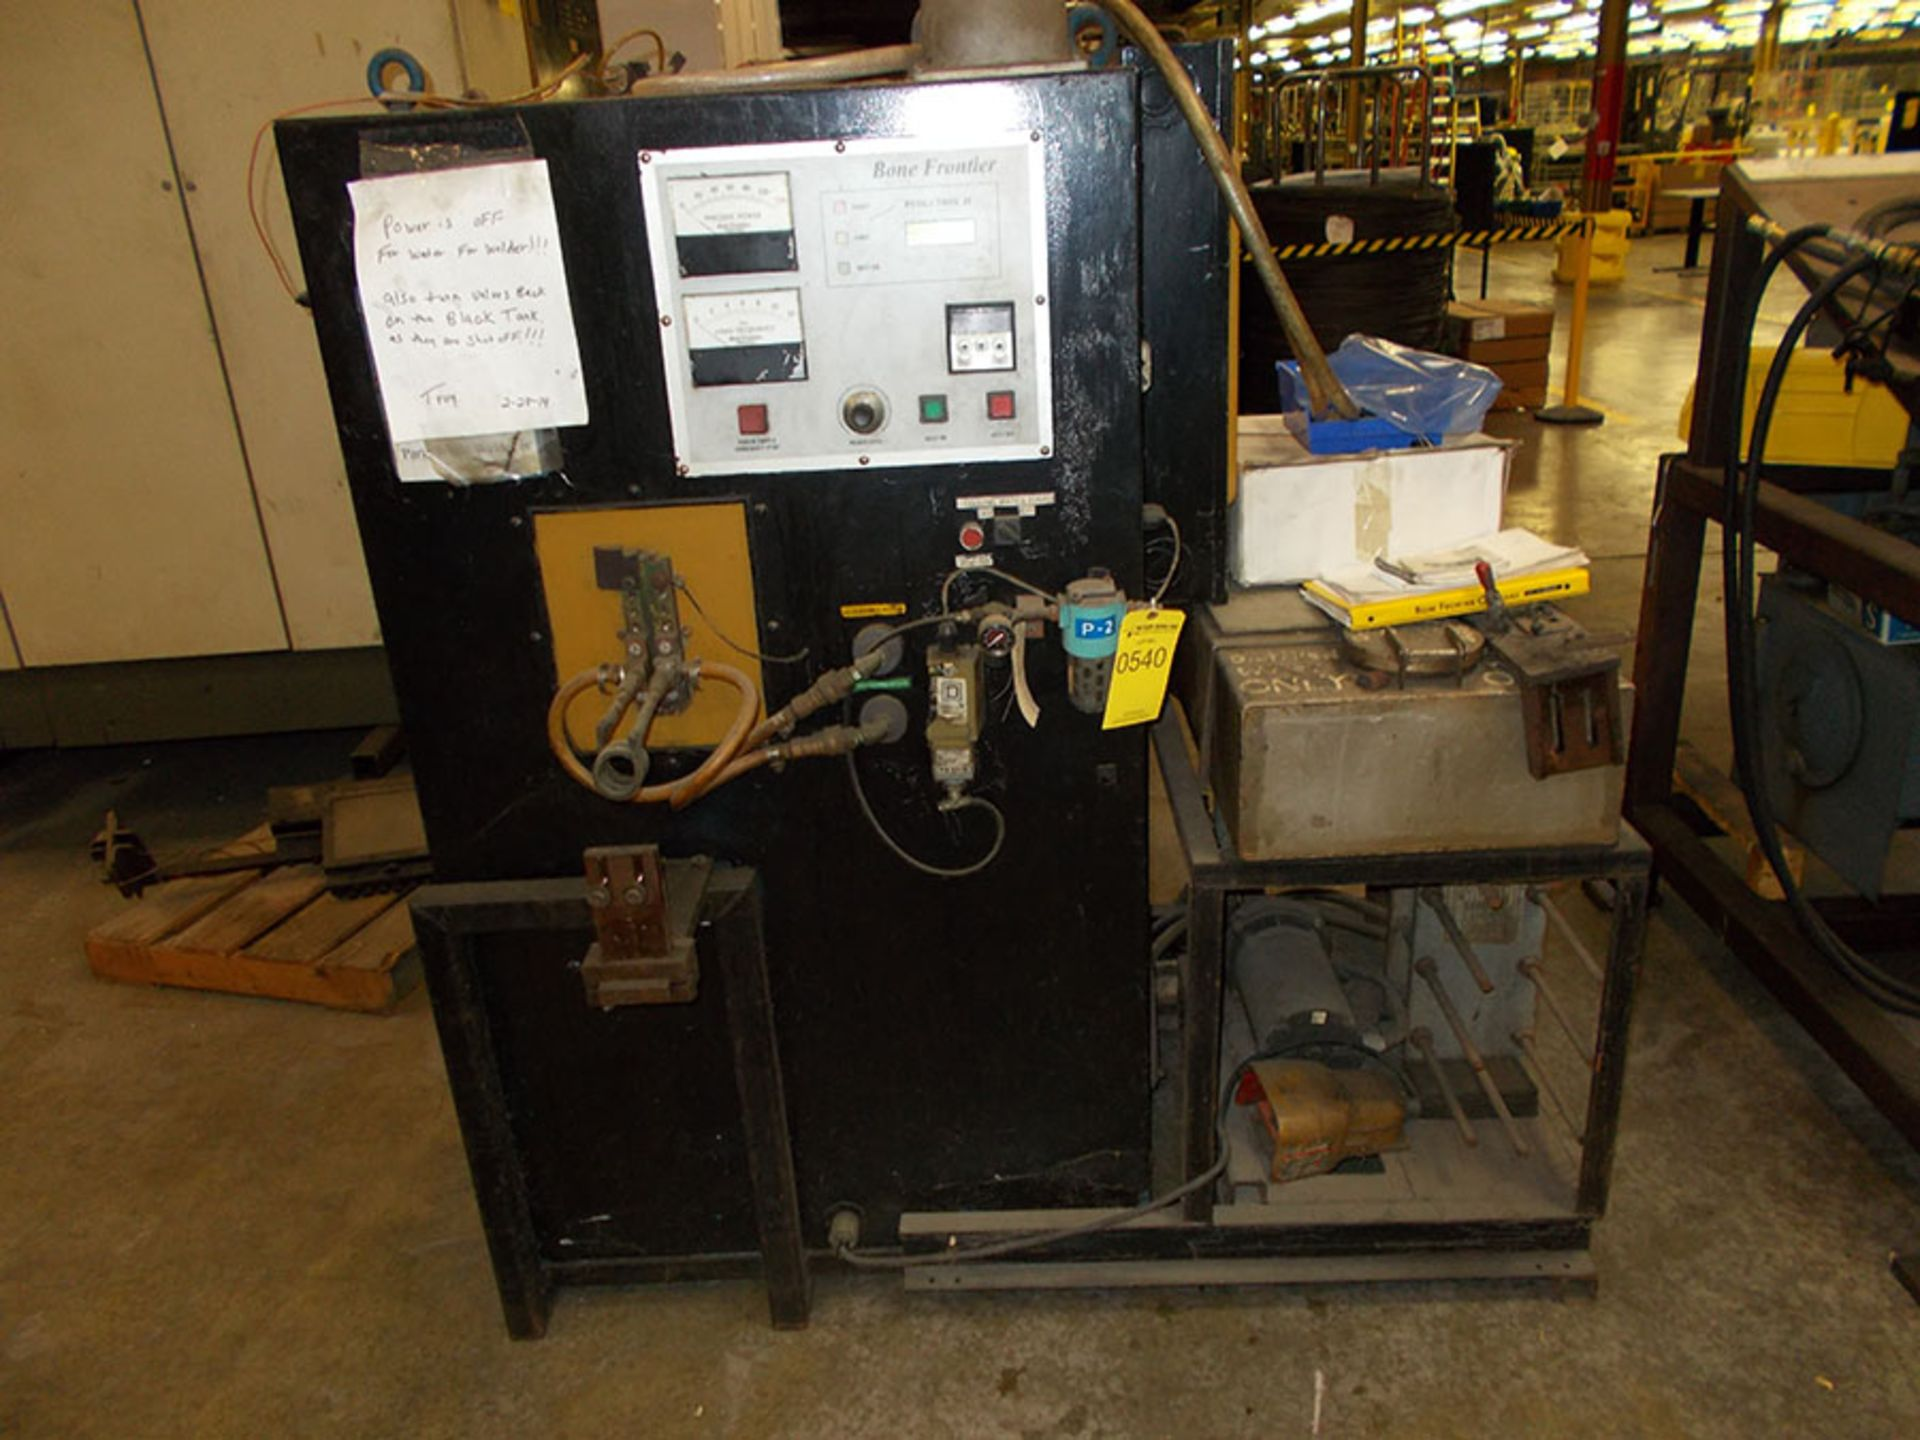 Lot 540 - BONE FRONTIER INDUCTION HEAT SYSTEM; S/N WM97011222, 240V, 3-PHASE